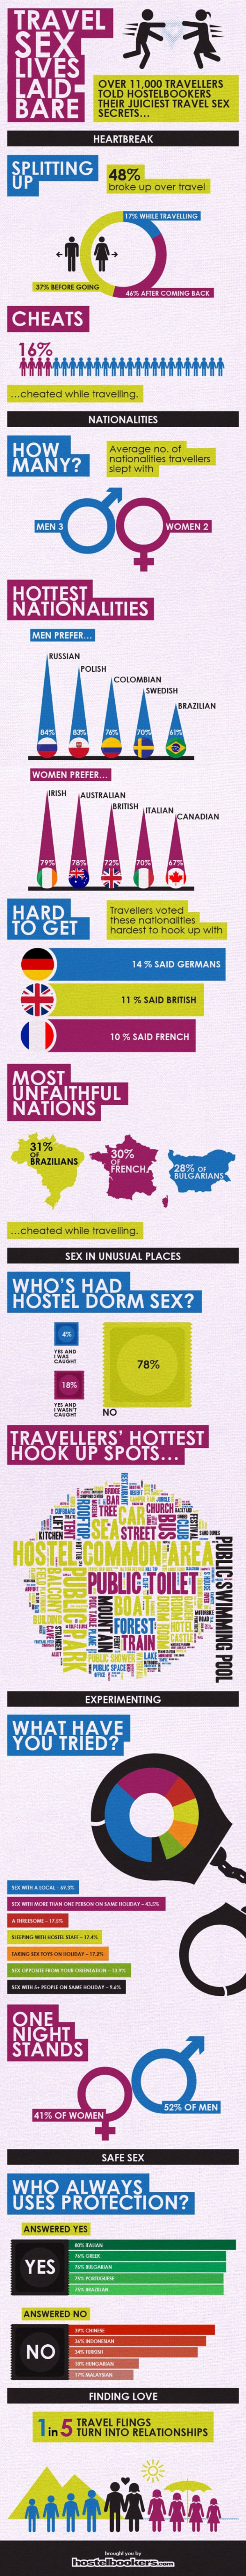 Travel Sex Hooking Up Infographic Main